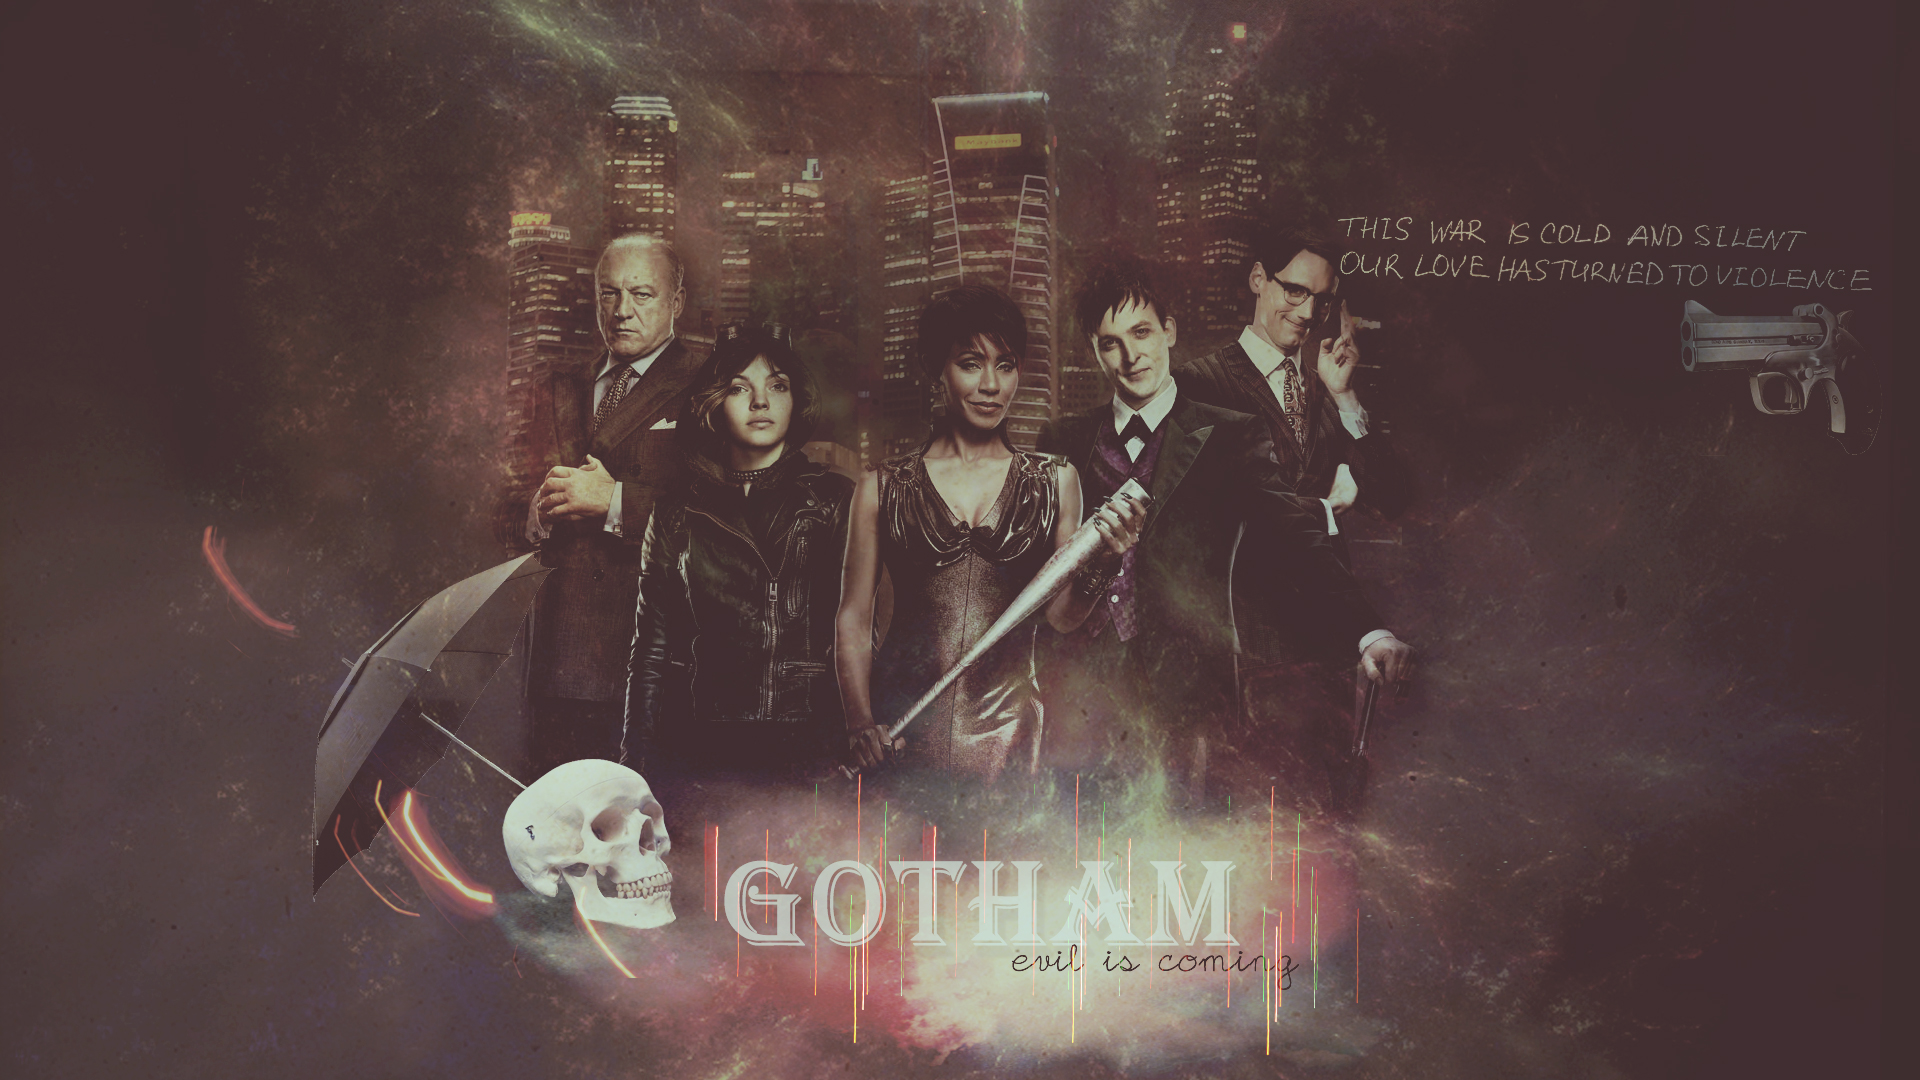 Gotham - Evil is coming by pounkska